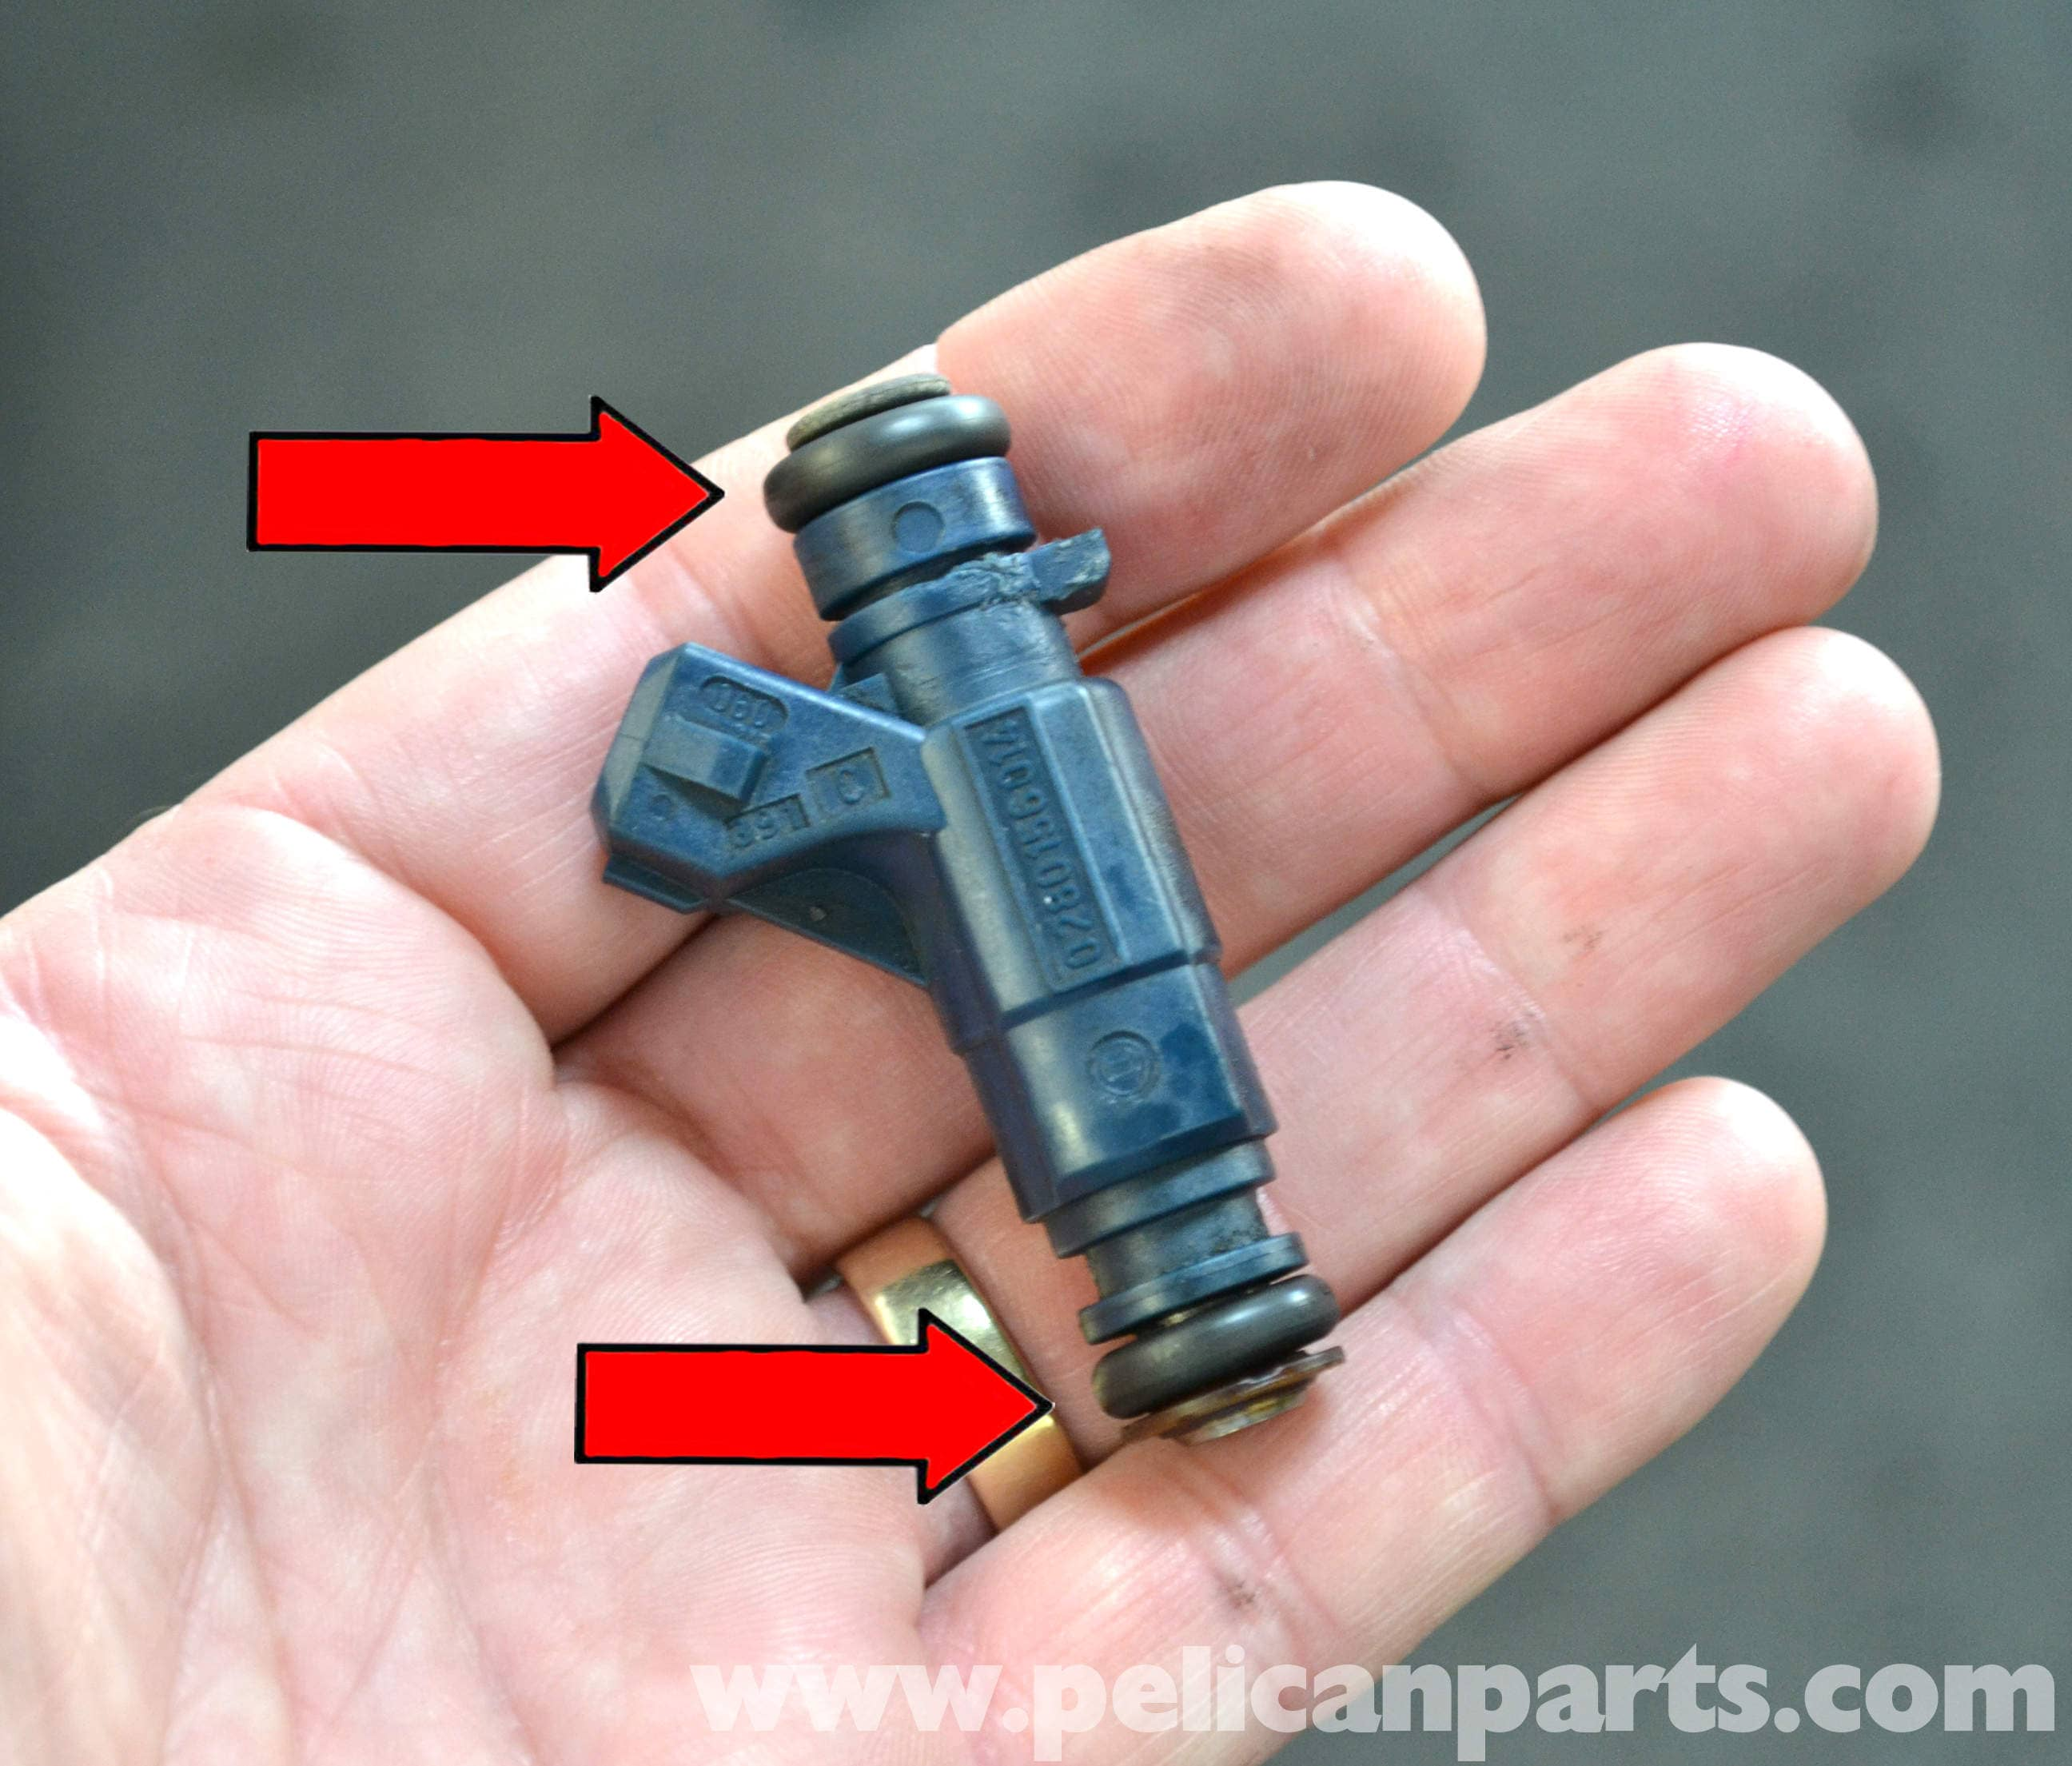 mercedes-benz w203 fuel injector replacement